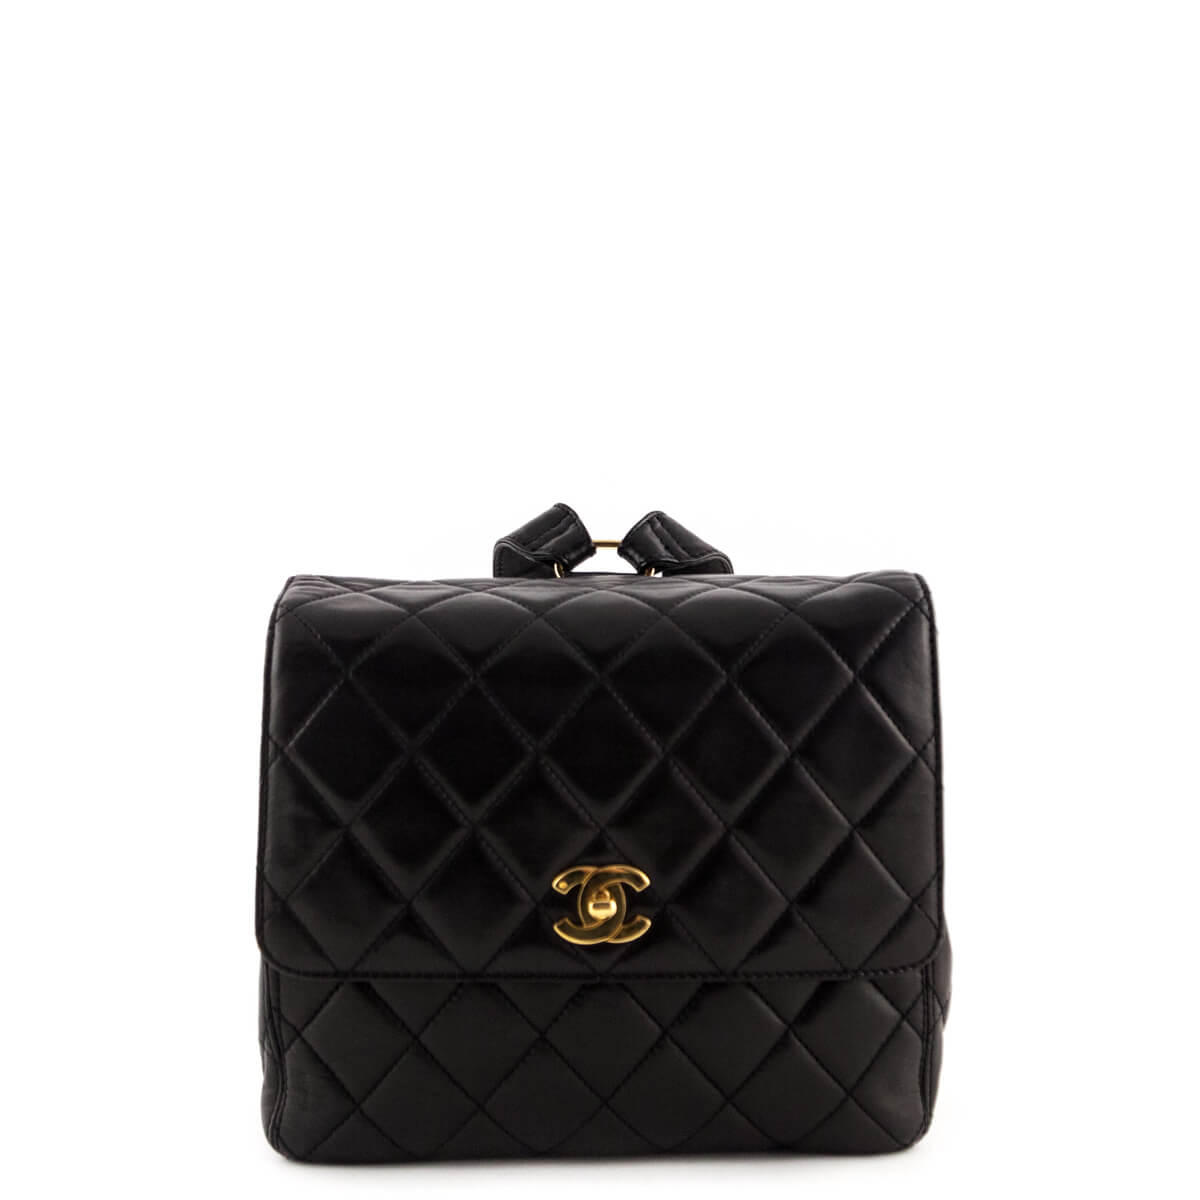 e3d5935ab2ba Chanel Black Quilted Lambskin Vintage Backpack - LOVE that BAG - Preowned  Authentic Designer Handbags ...